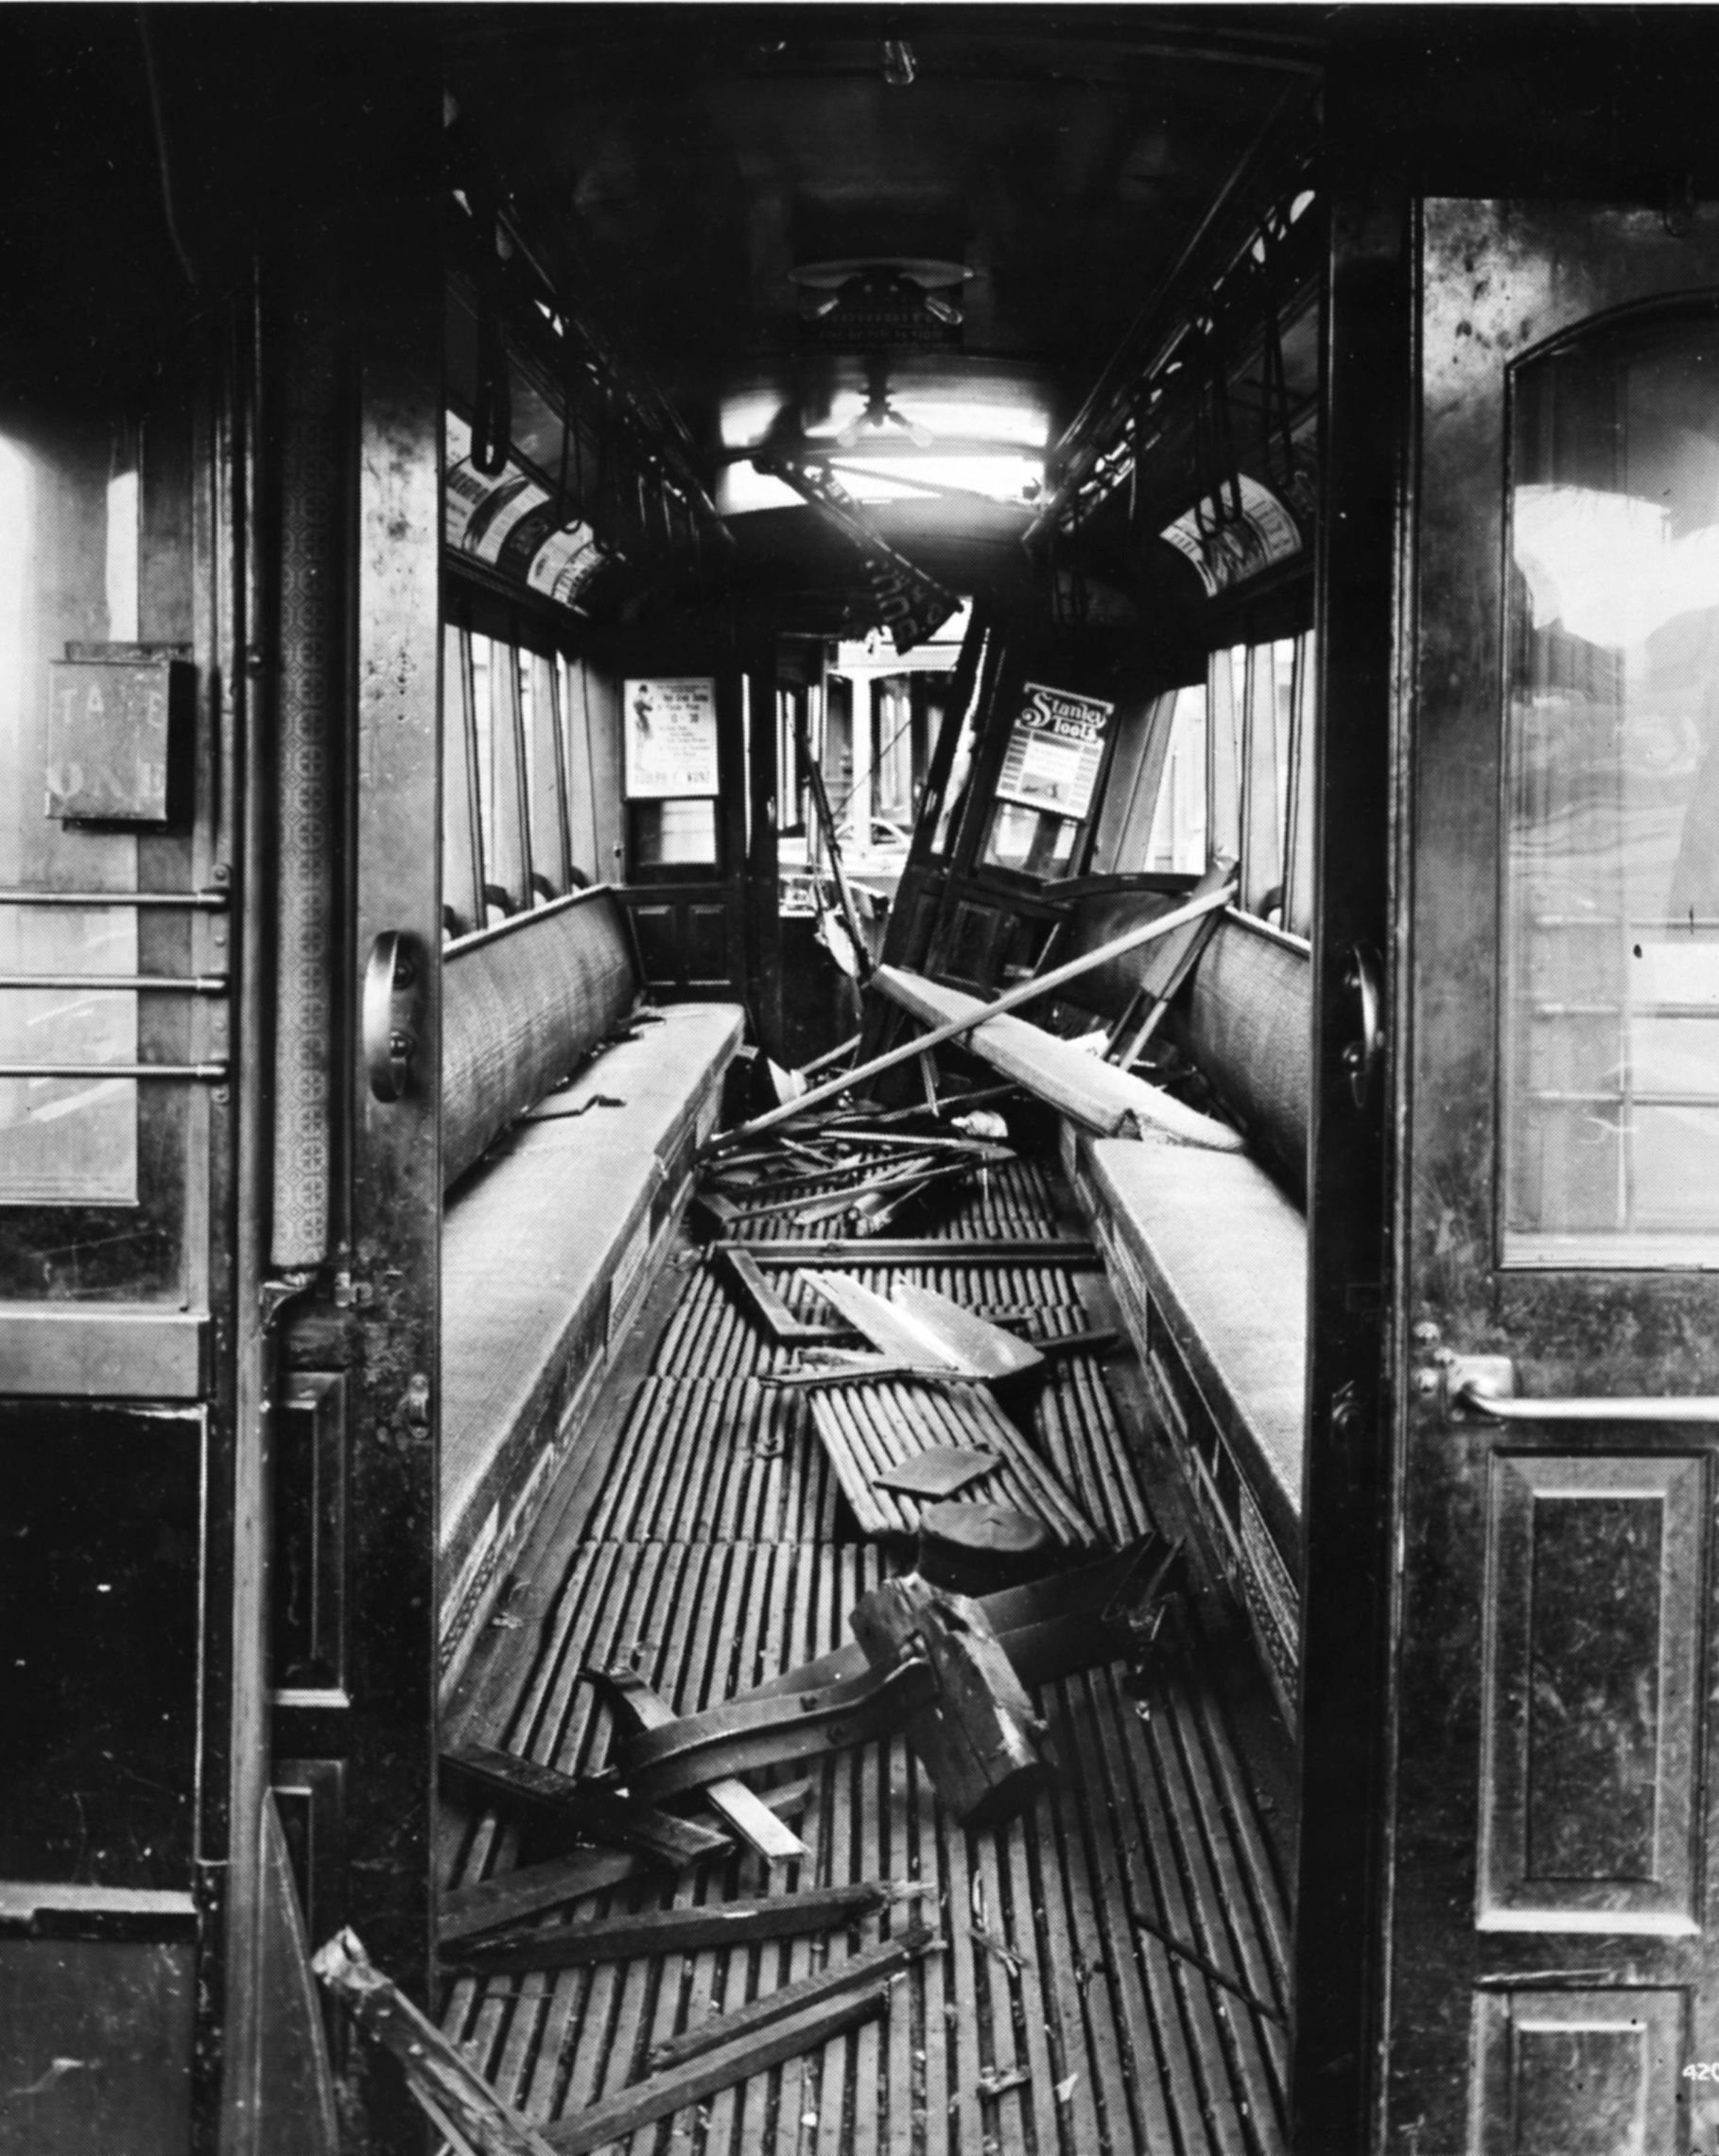 Stree tcar thought to have been damaged during 1917 street car workers' strike (Sangamon Valley Collection)